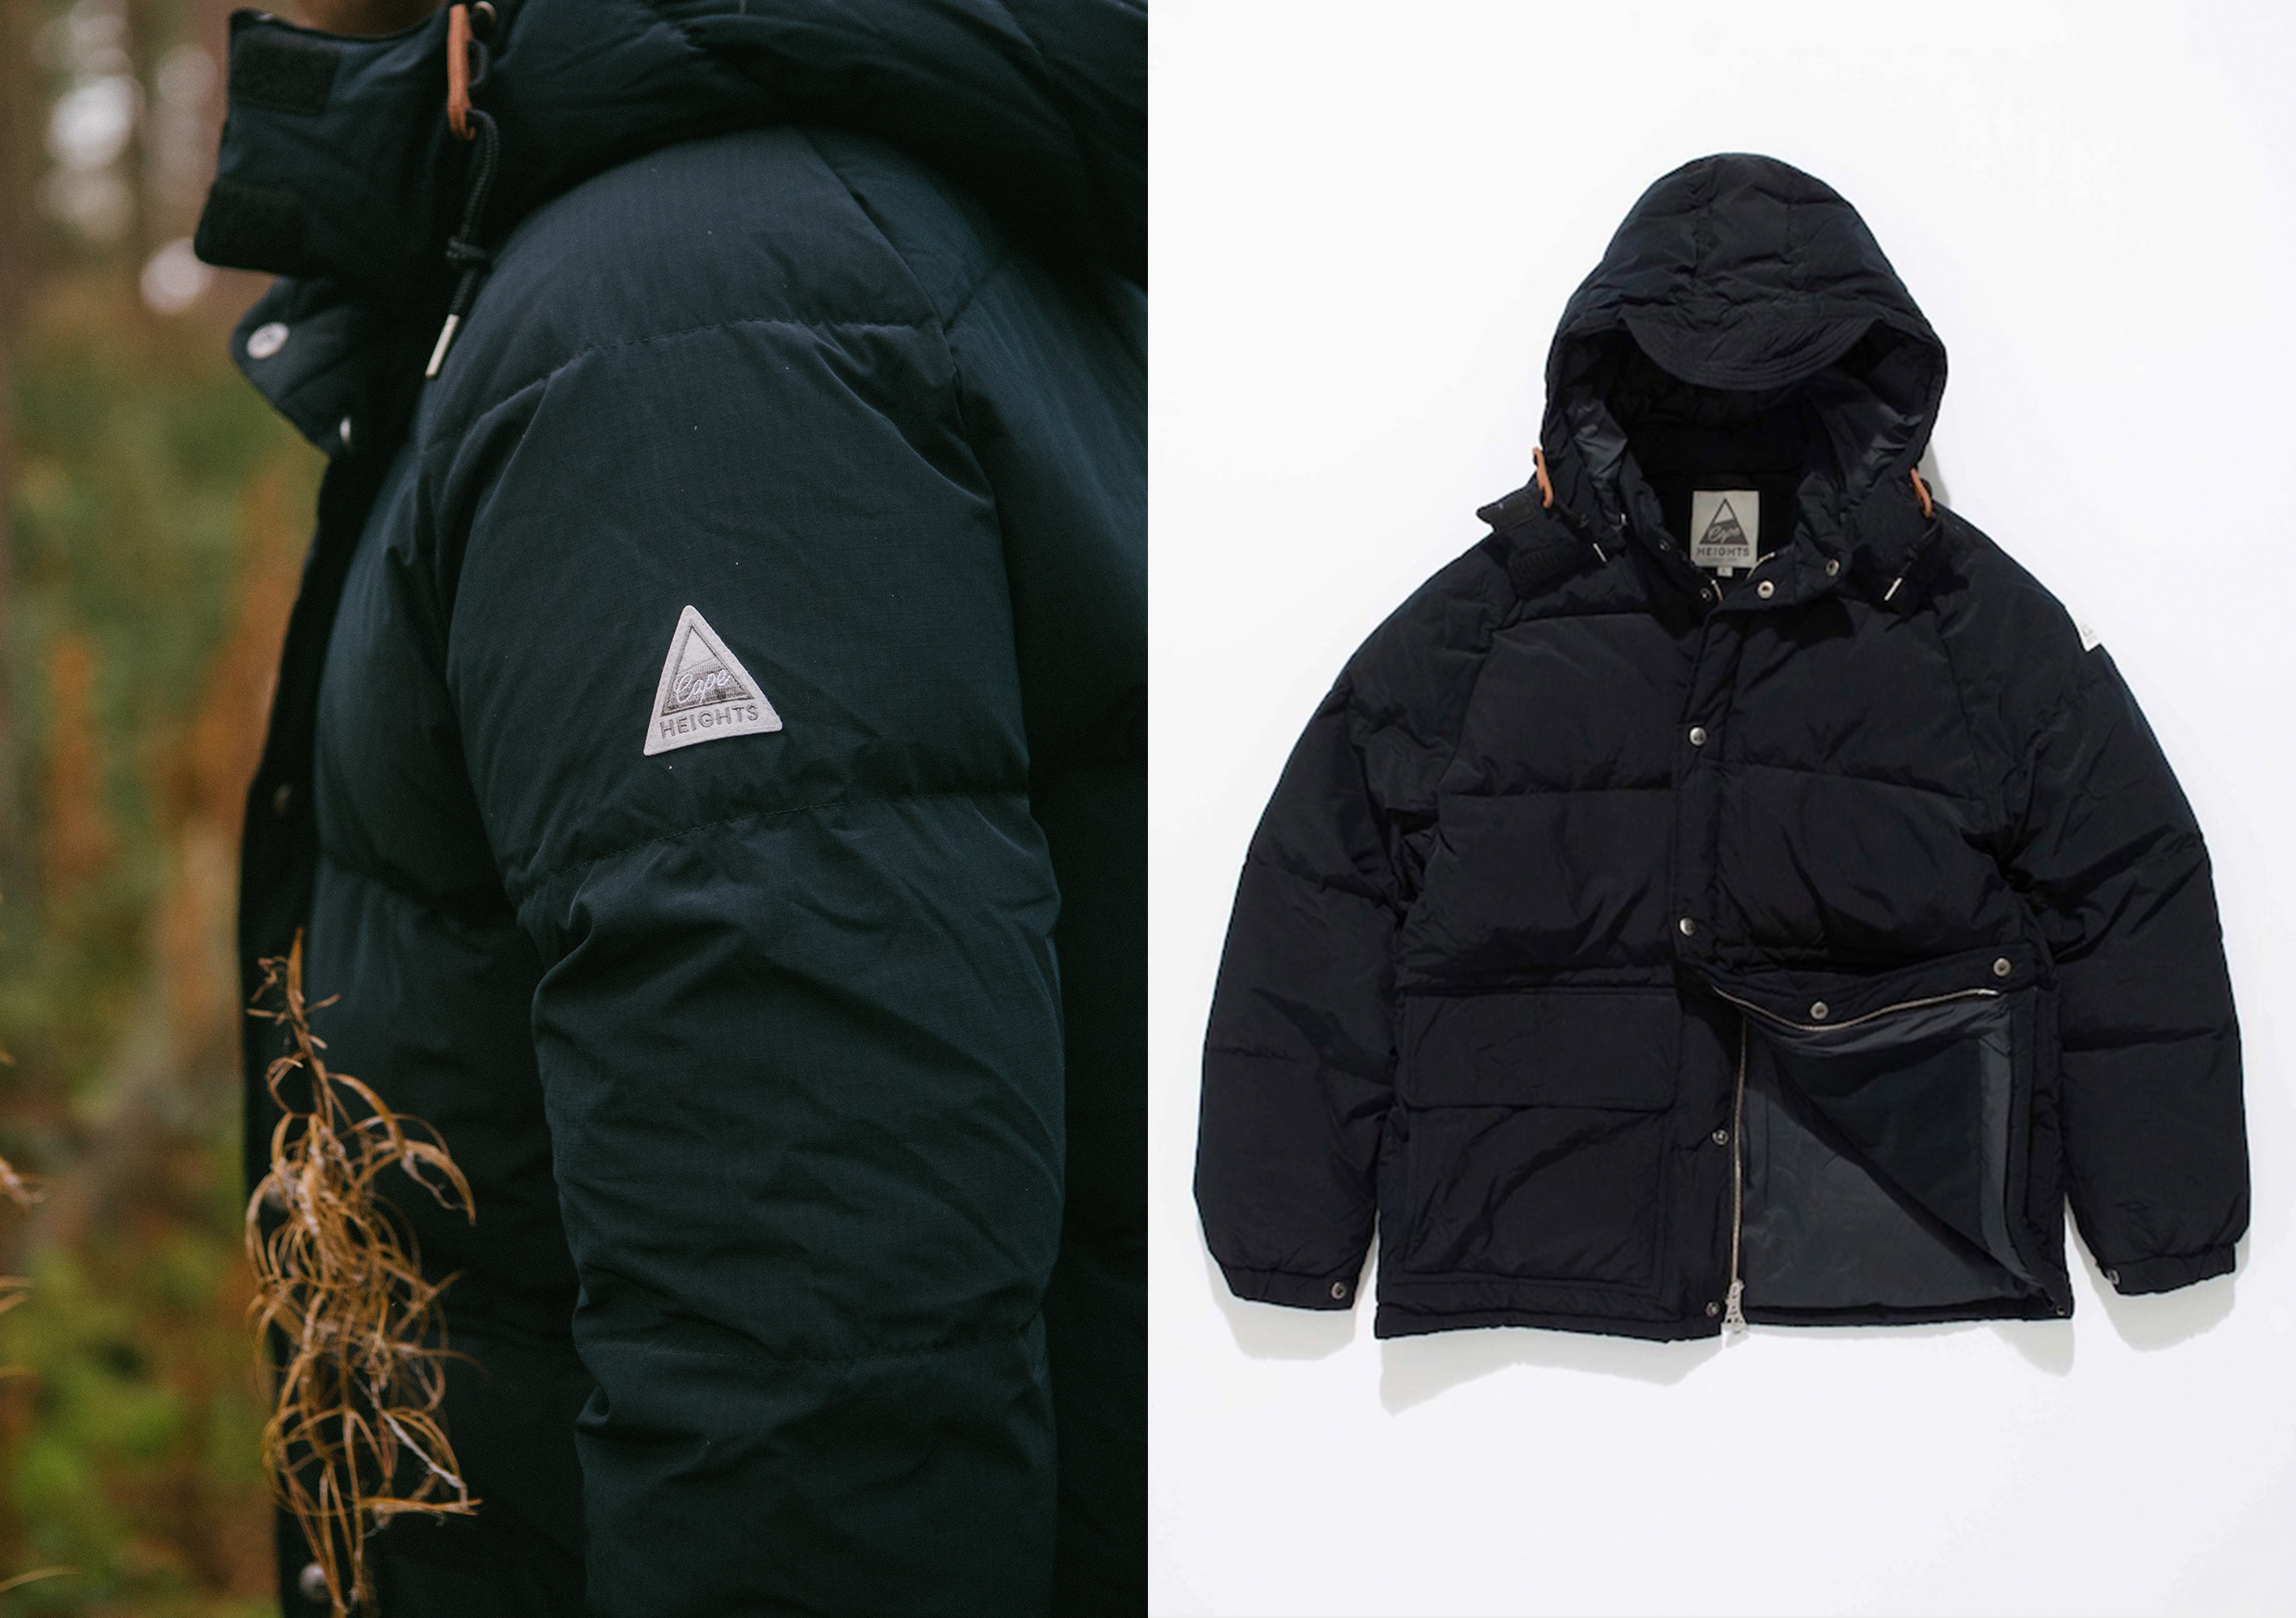 Cape Heights AW20 Collection At HIP outdoors lookbook